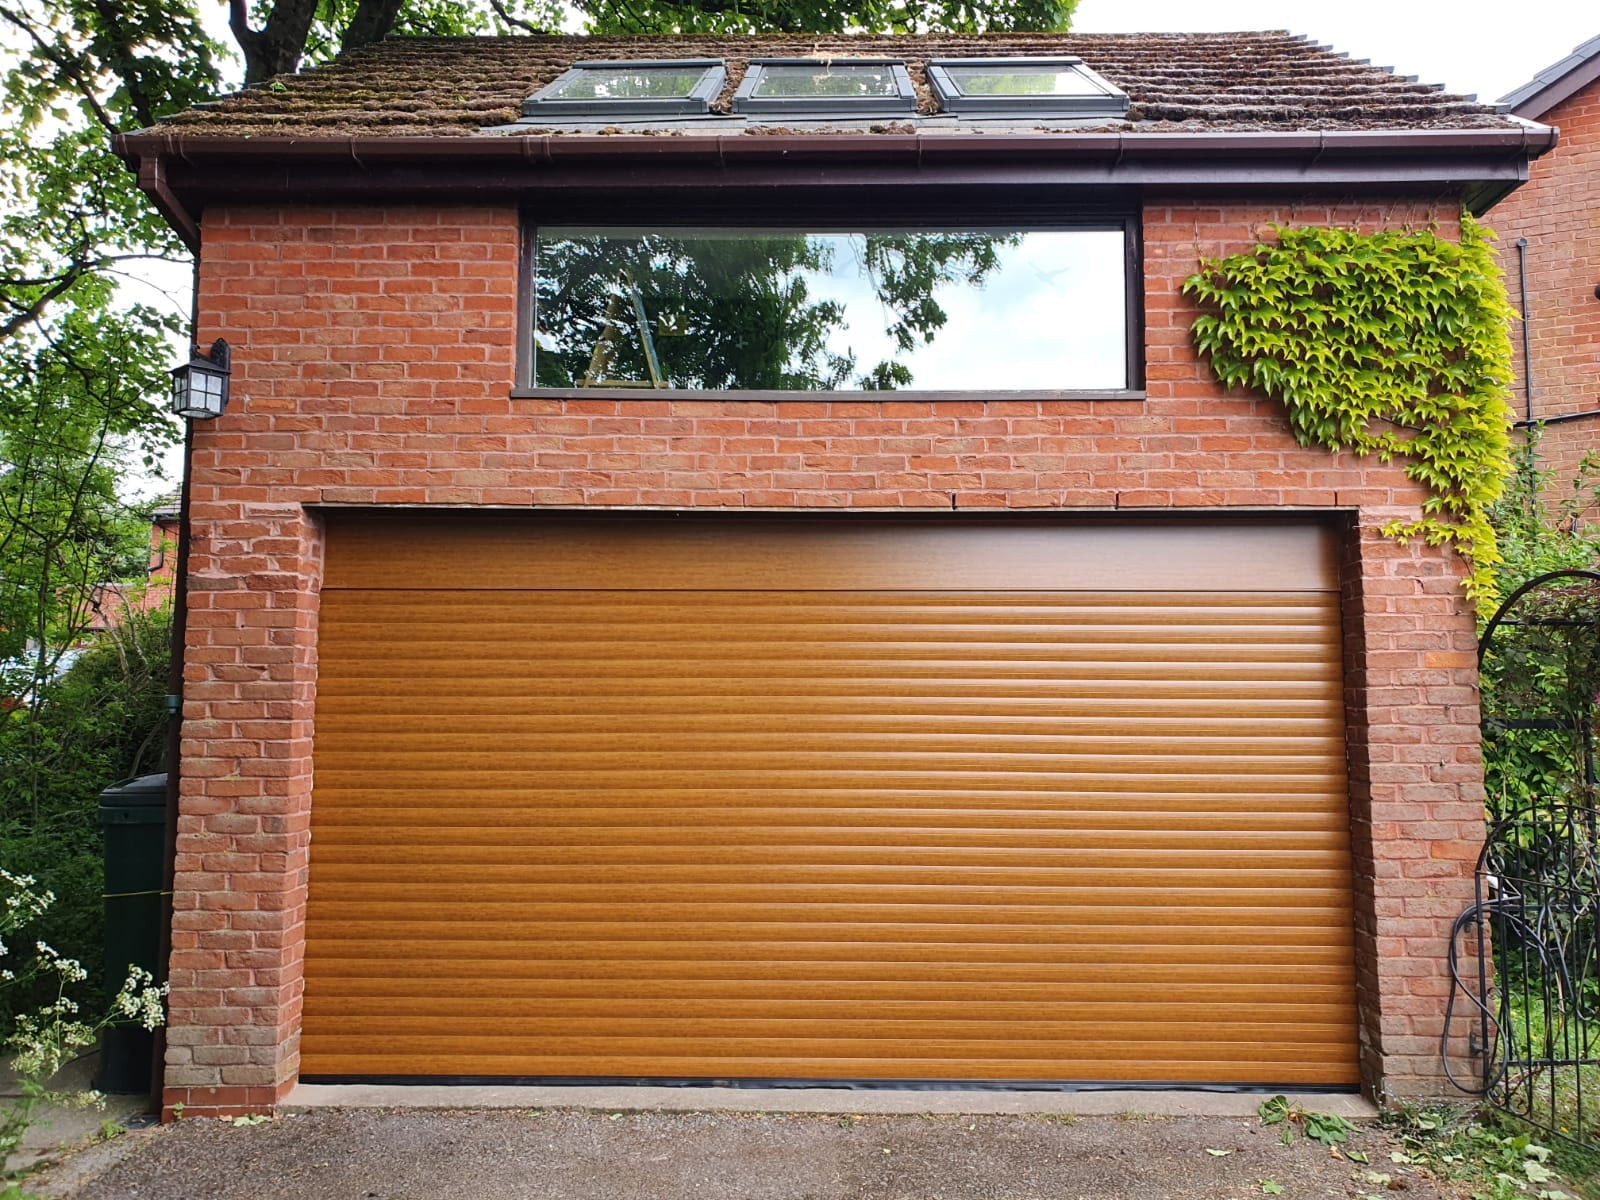 77mm fully insulated double roller garage door in Golden Oak with a matching kit.